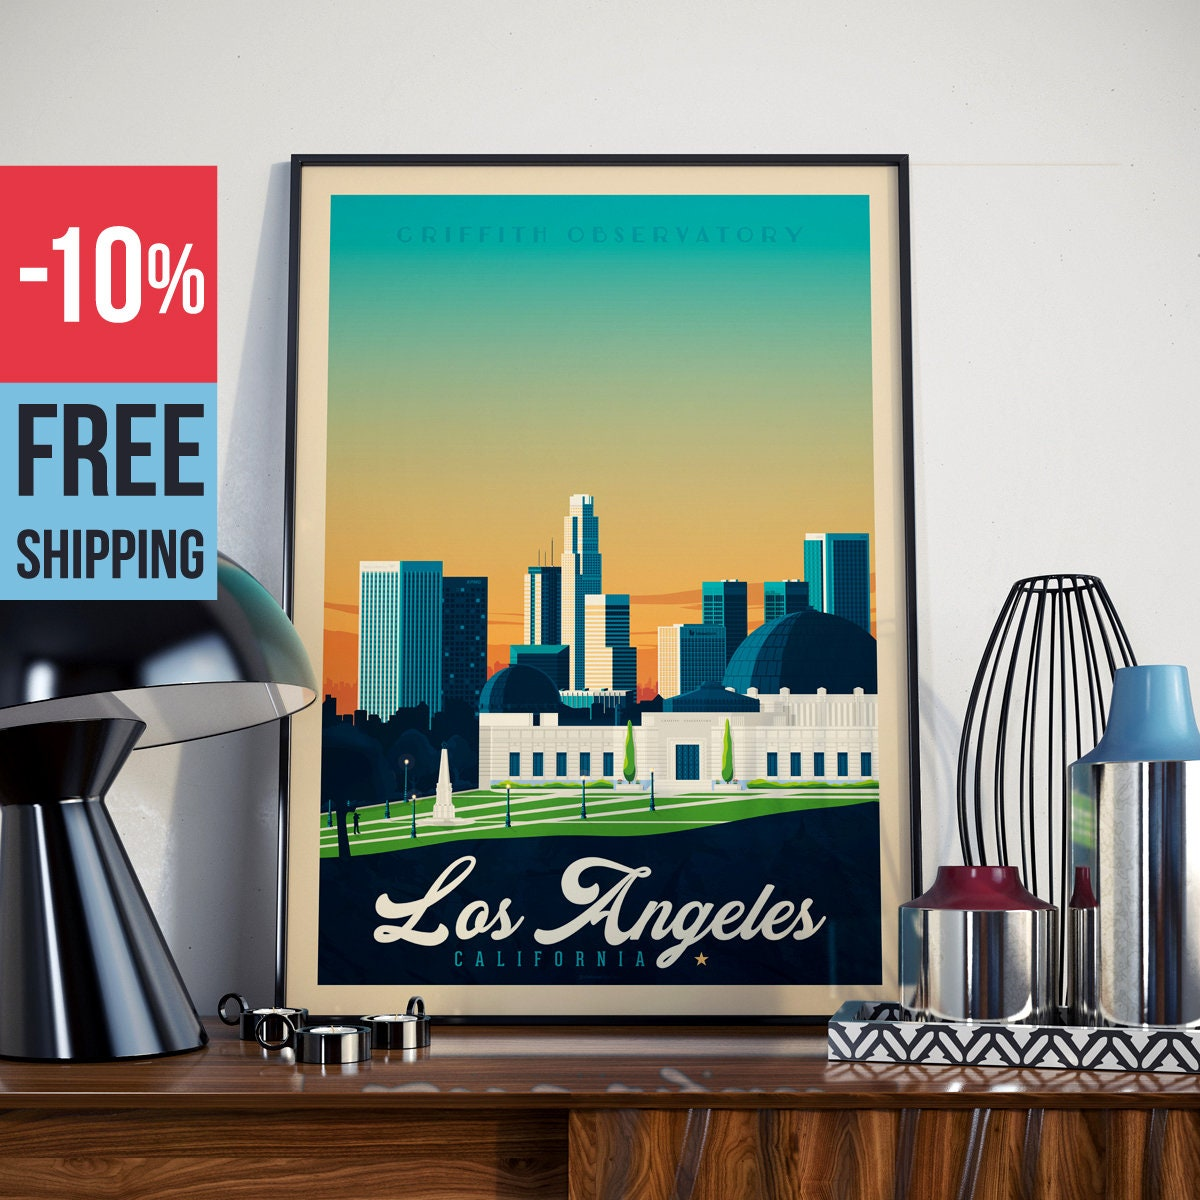 Los Angeles California USA Print - Los Angeles Vintage travel Poster ...